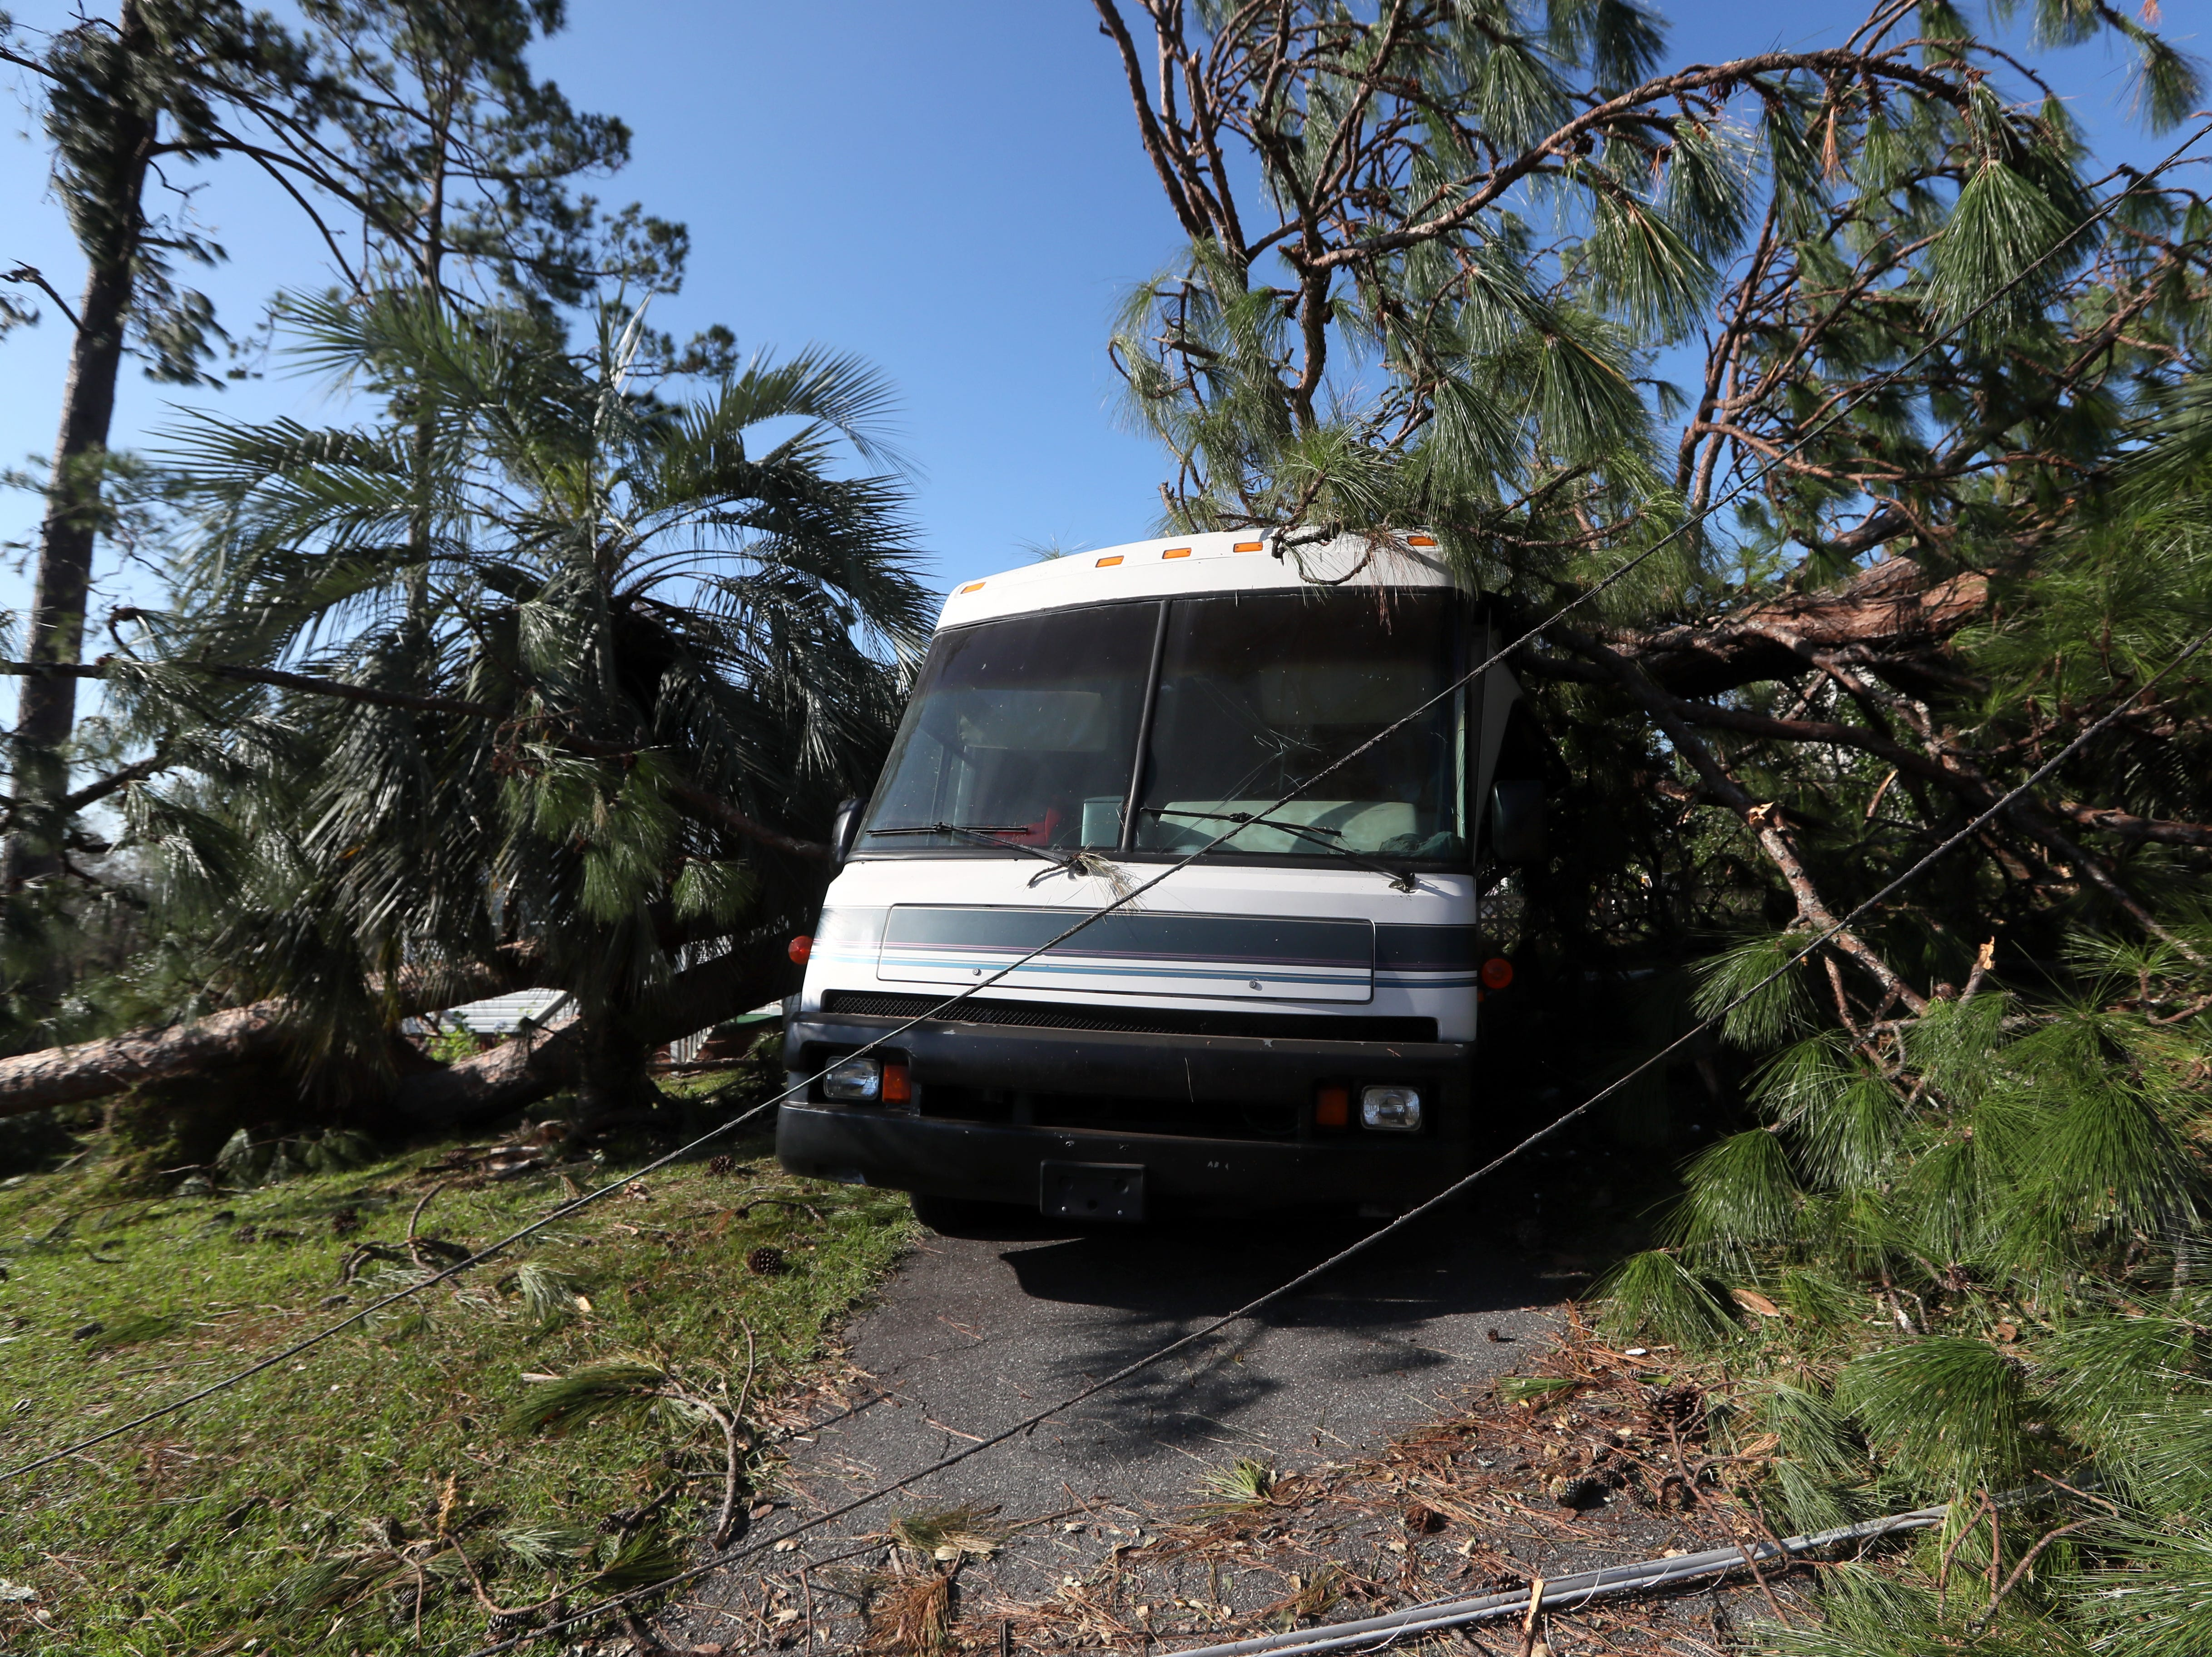 An RV is left crushed by a fallen tree from Hurricane Michael at the Patrick home in Chattahoochee, Fla. Monday, Oct. 15, 2018.